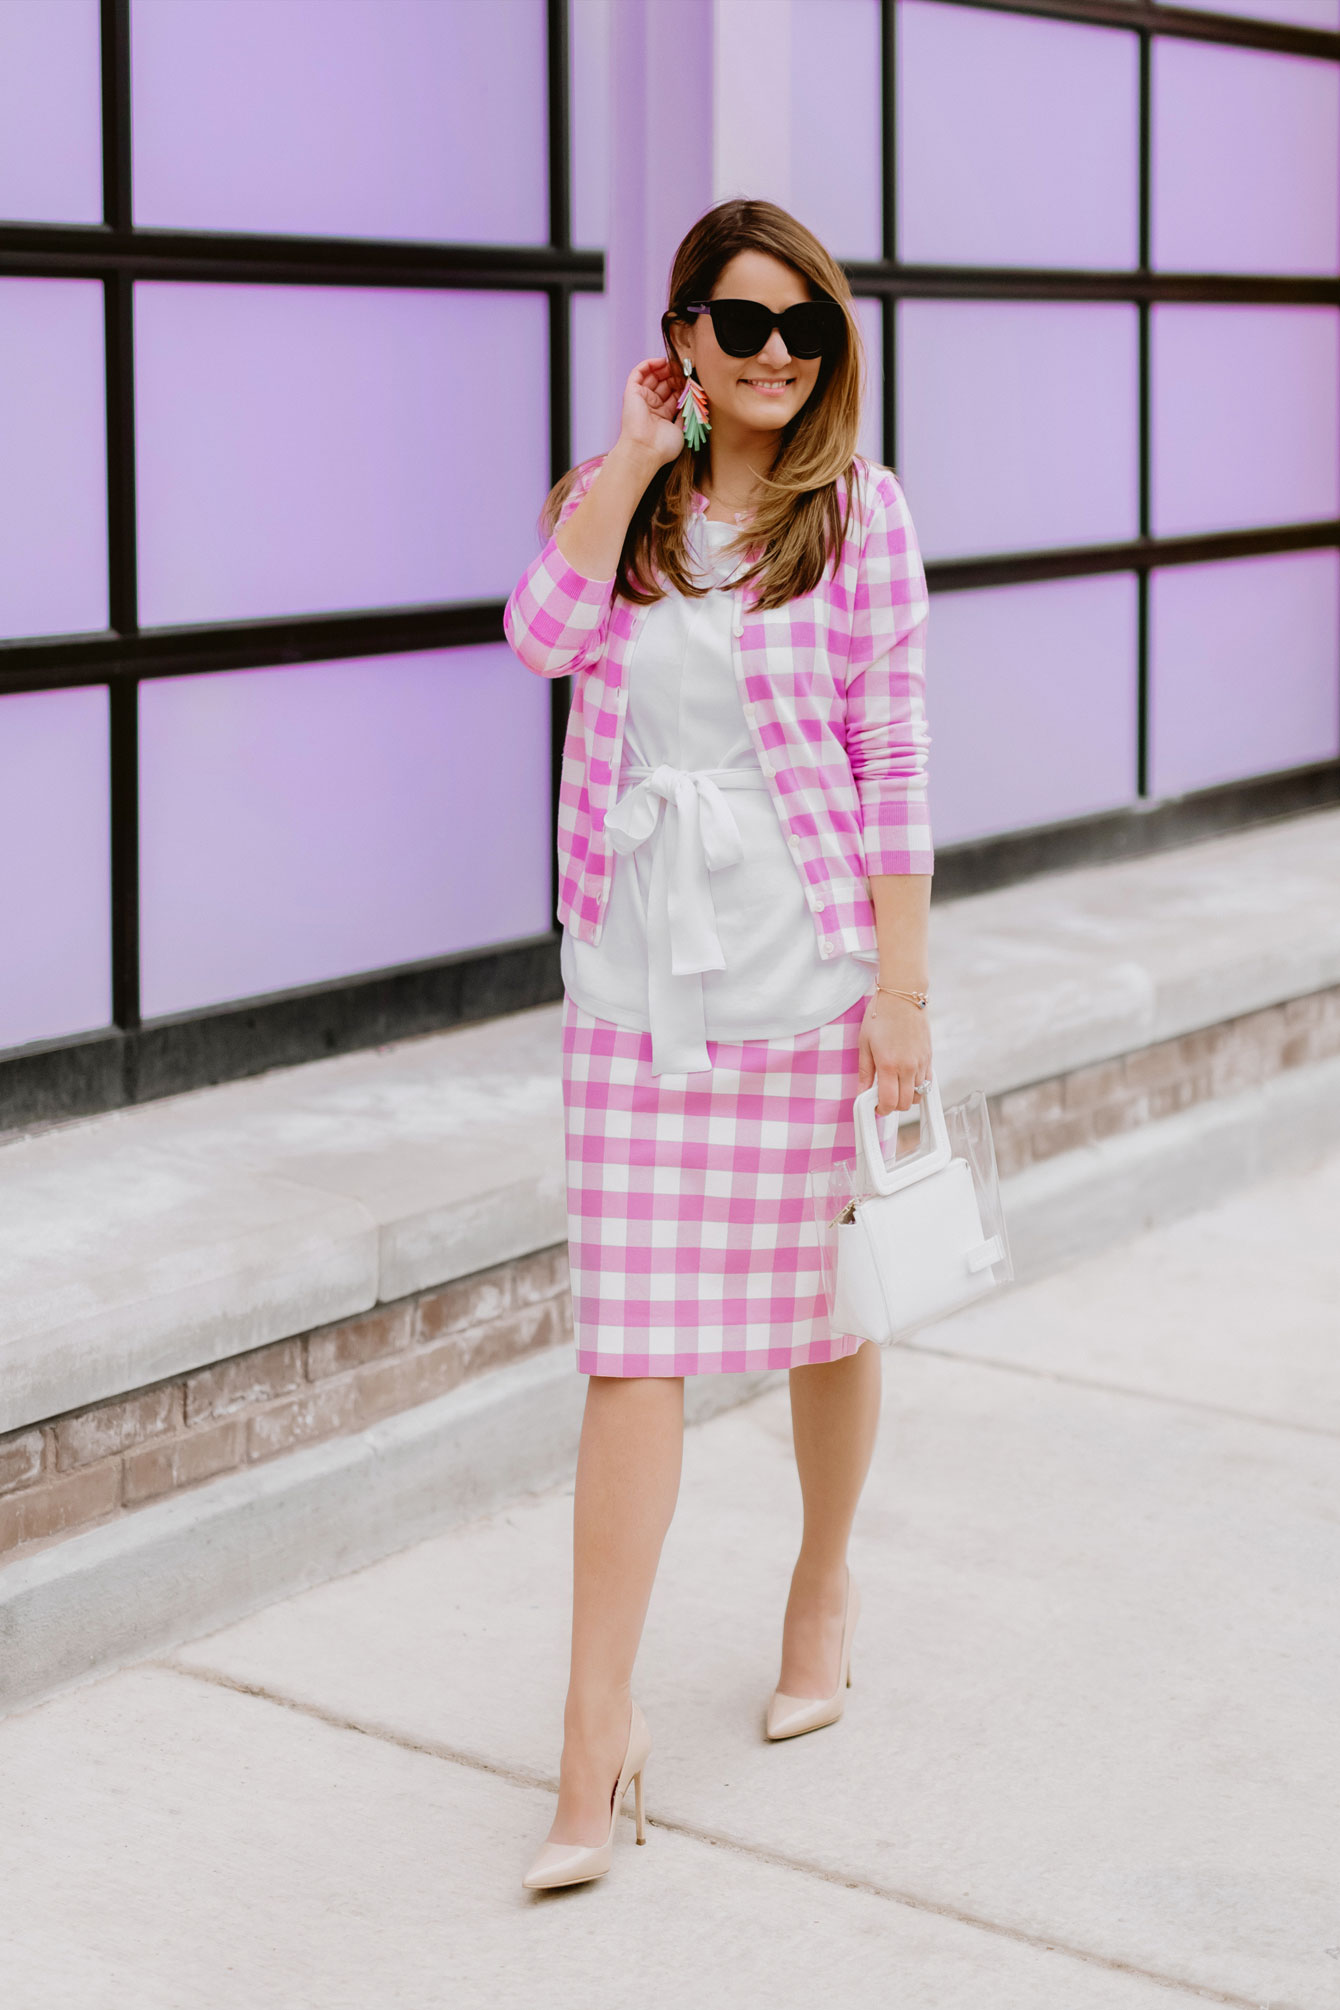 J Crew Pink Gingham Pencil Skirt